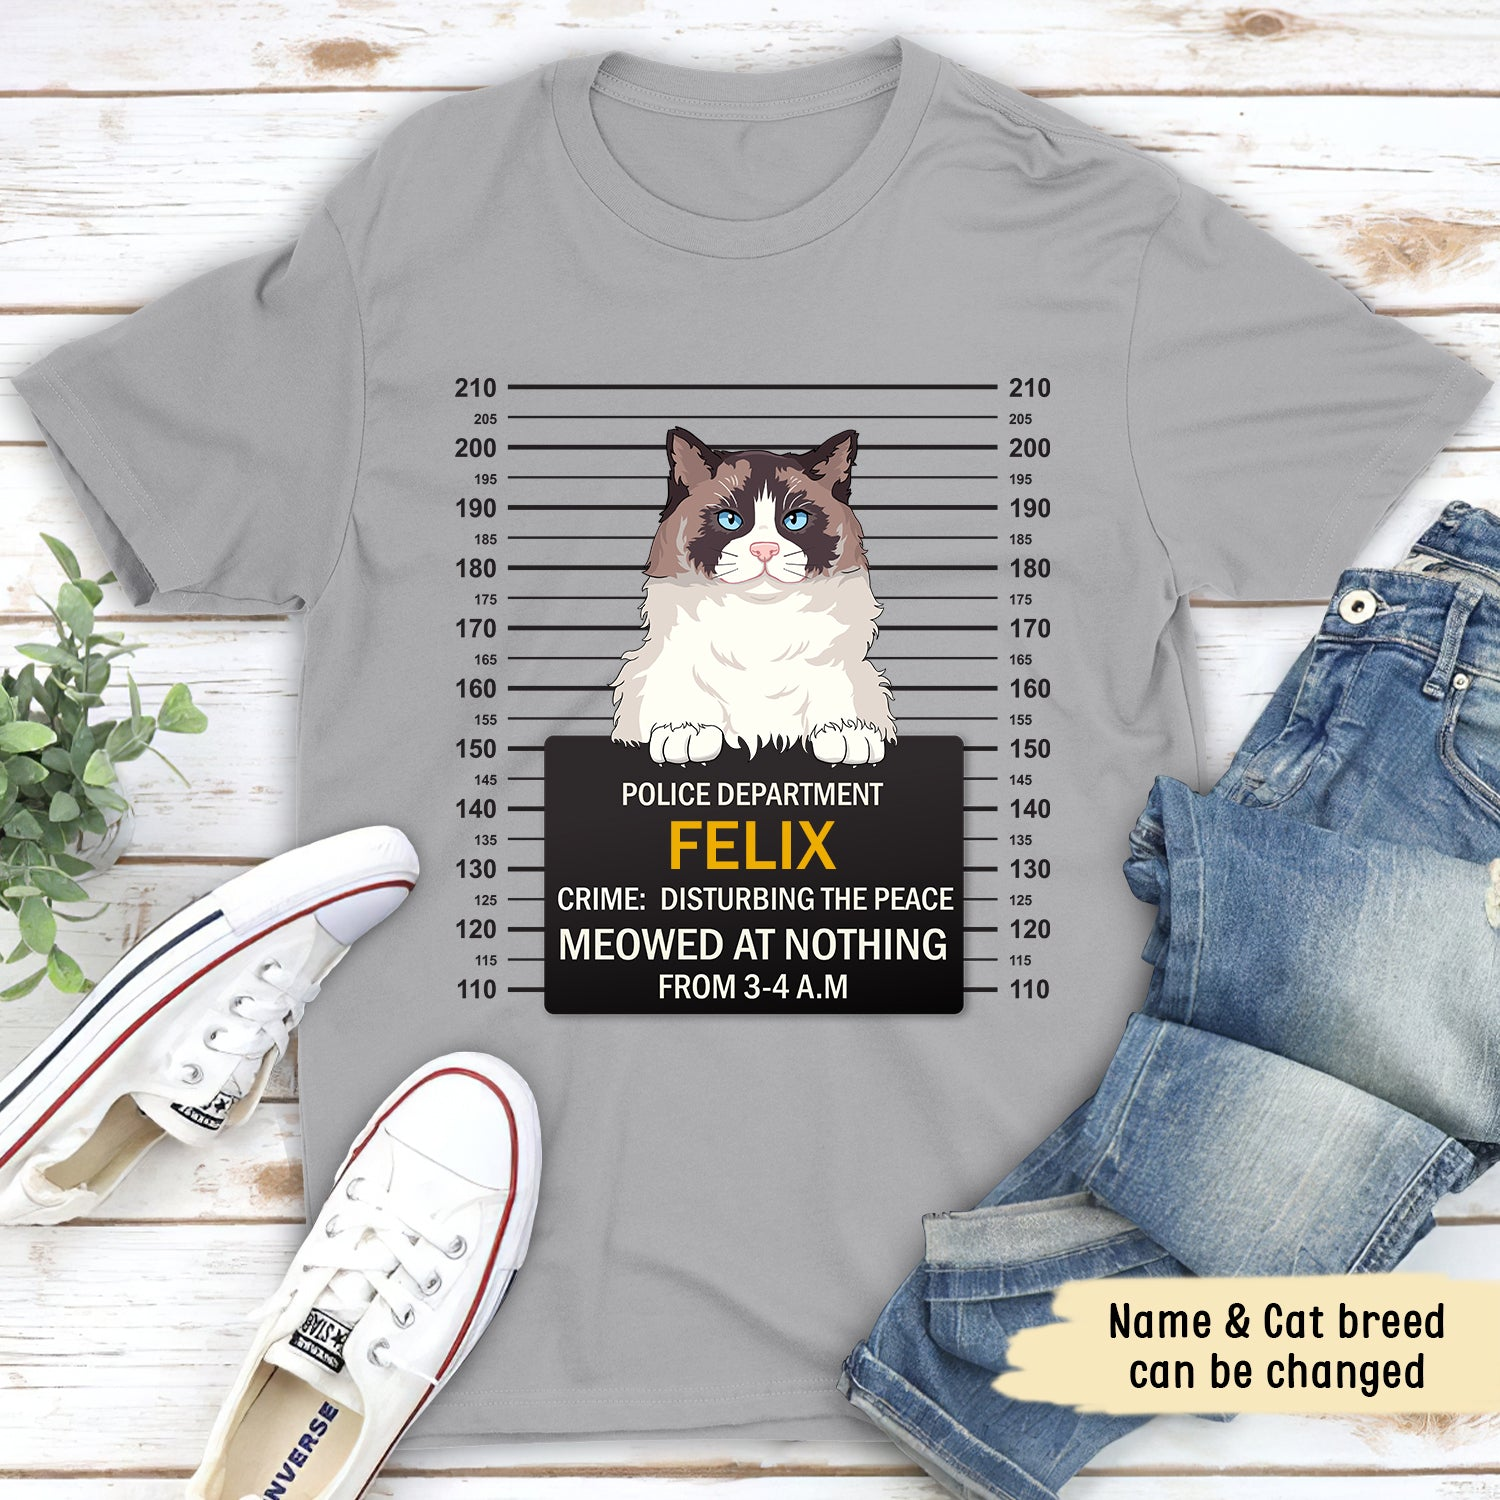 Meowed At Nothing - Personalized Custom Unisex T-shirt